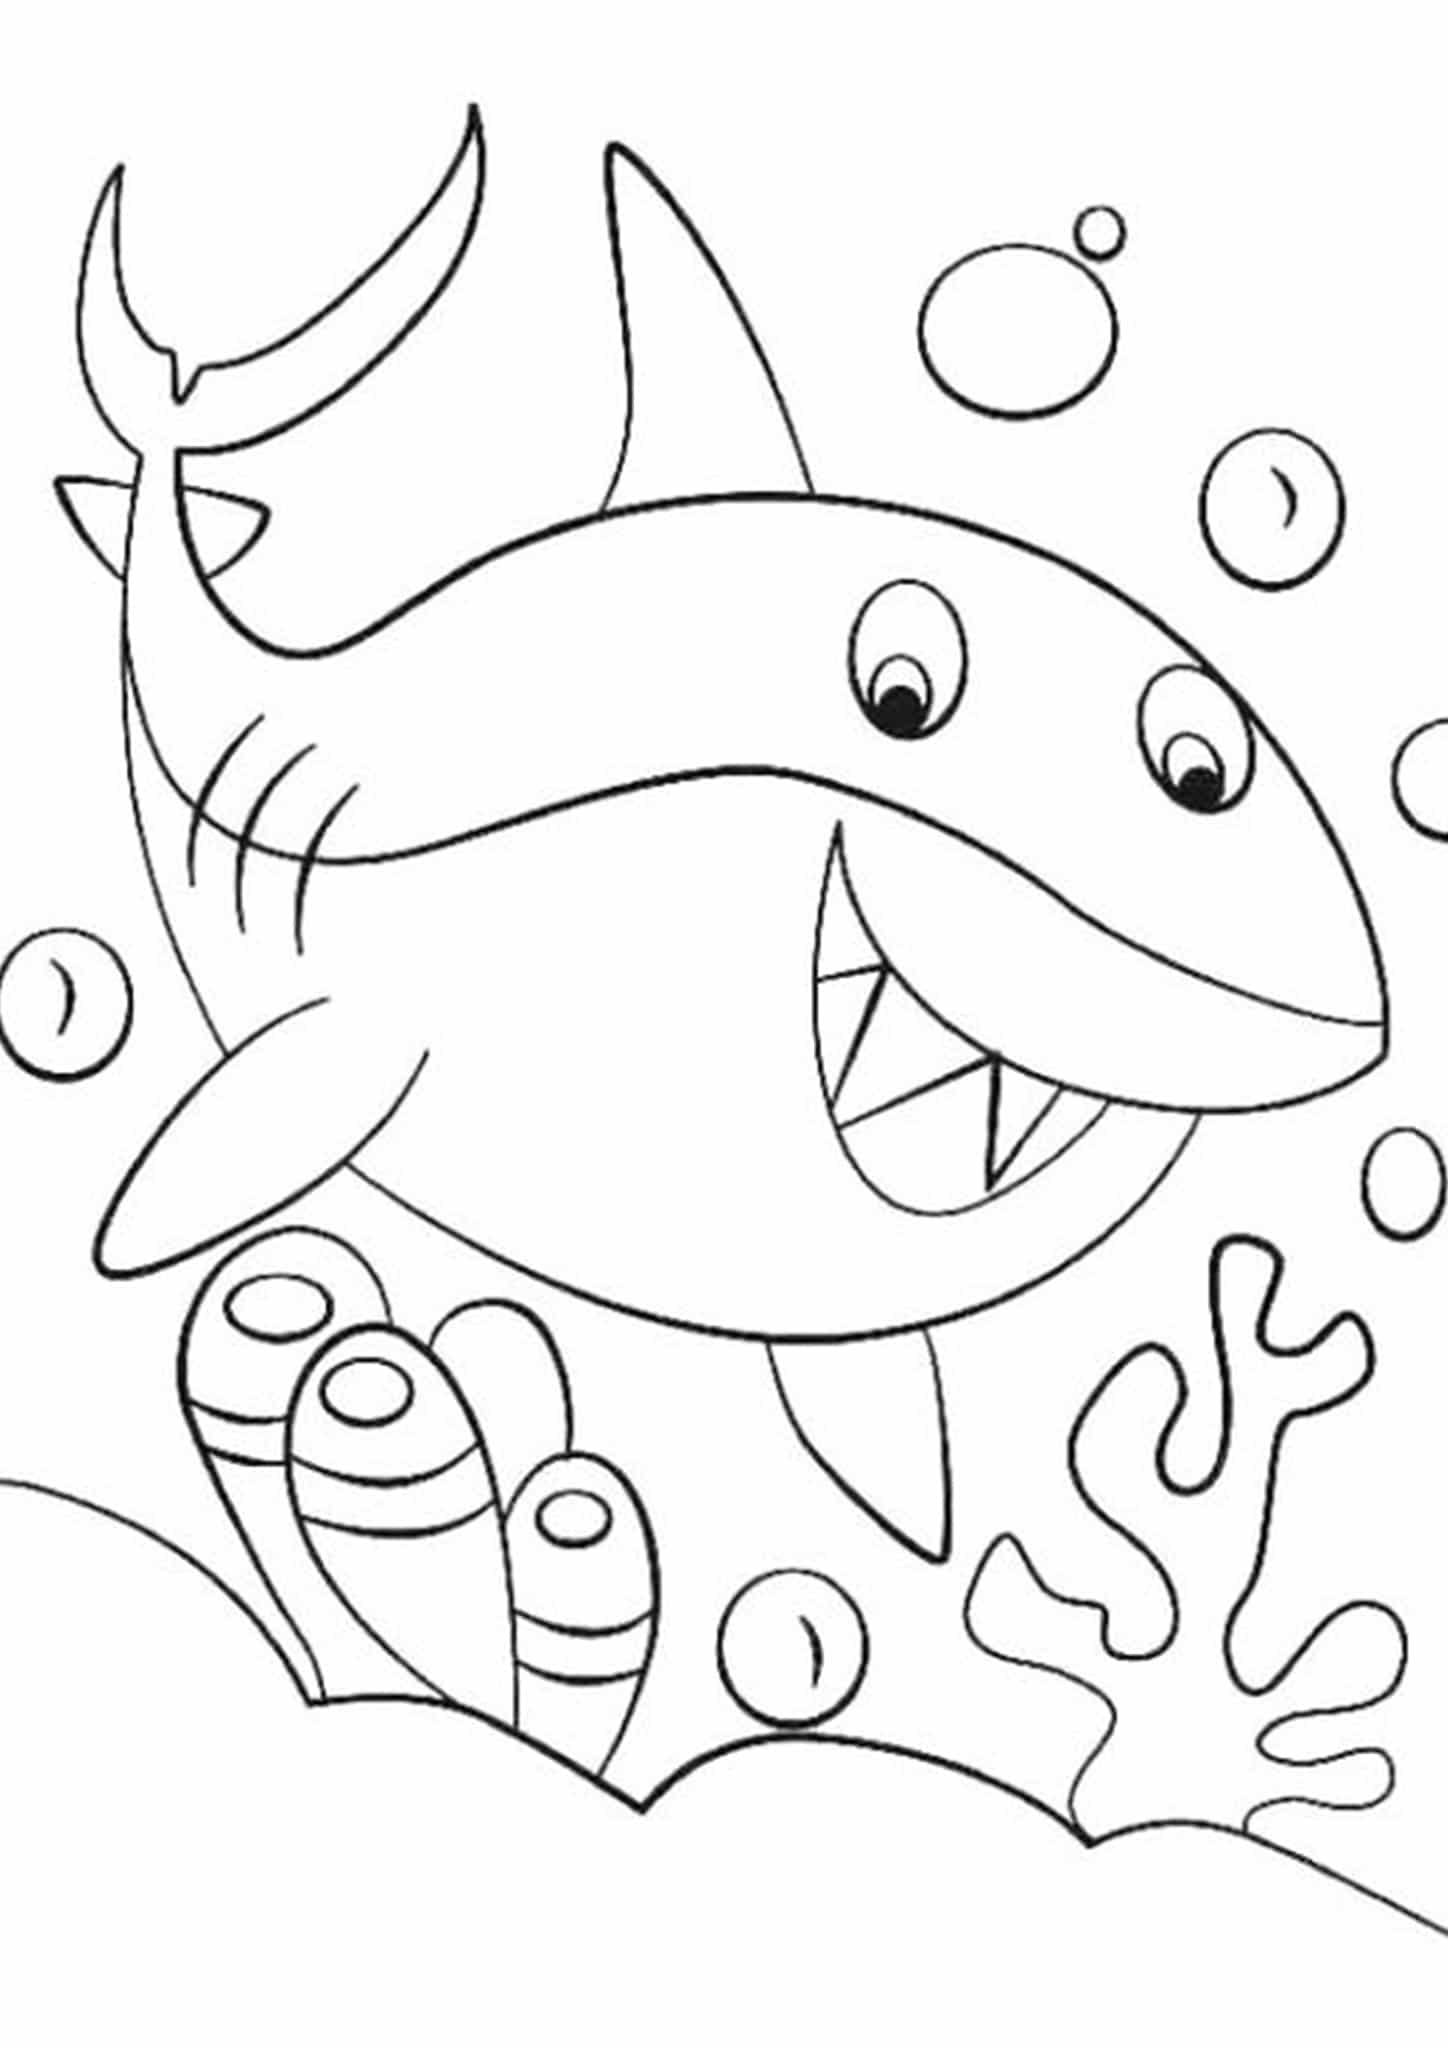 coloring pages printables garfield coloring pages to download and print for free coloring printables pages